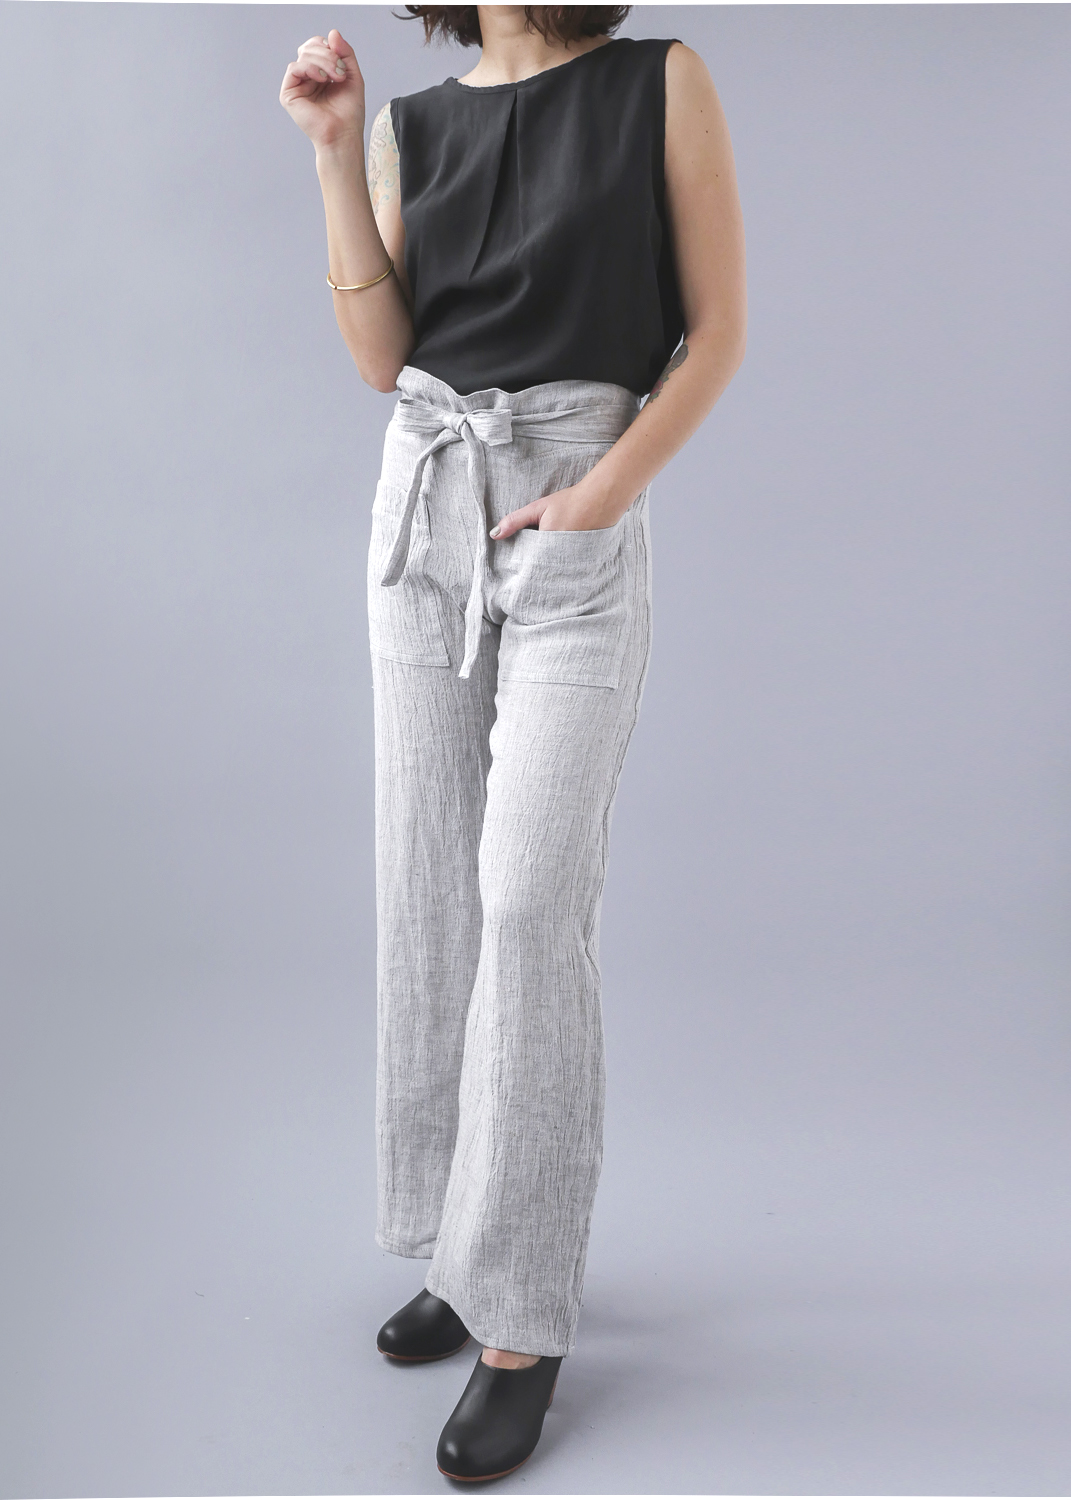 Temperate Jan light grey pants.jpg